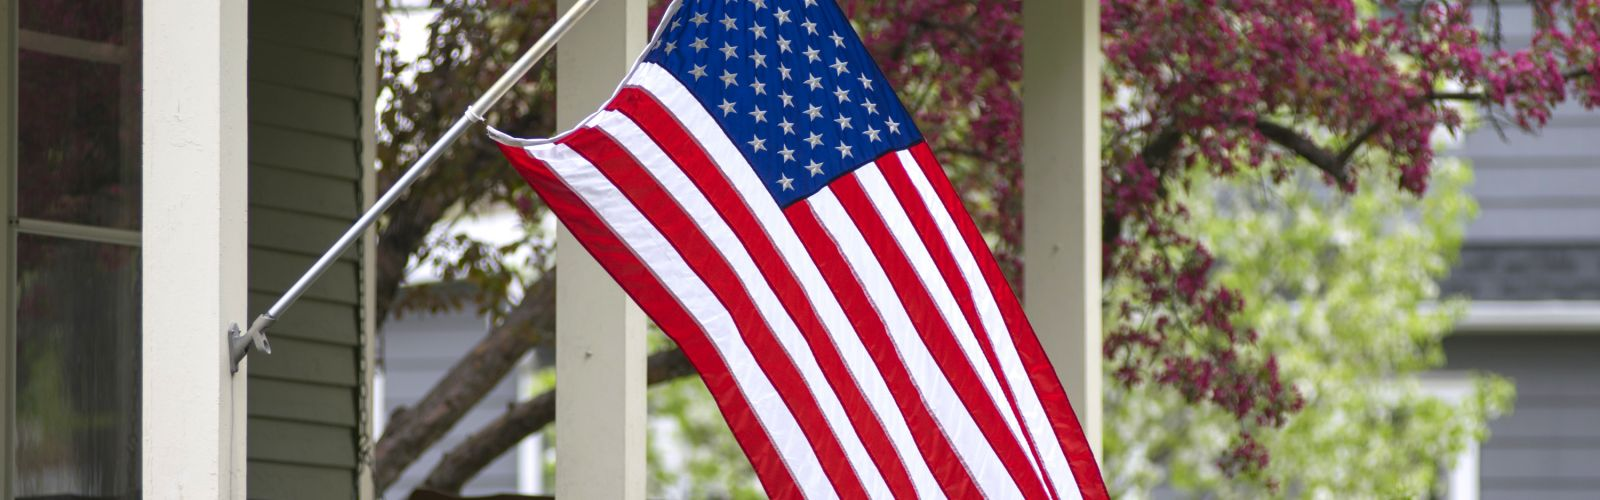 American flag on front of house